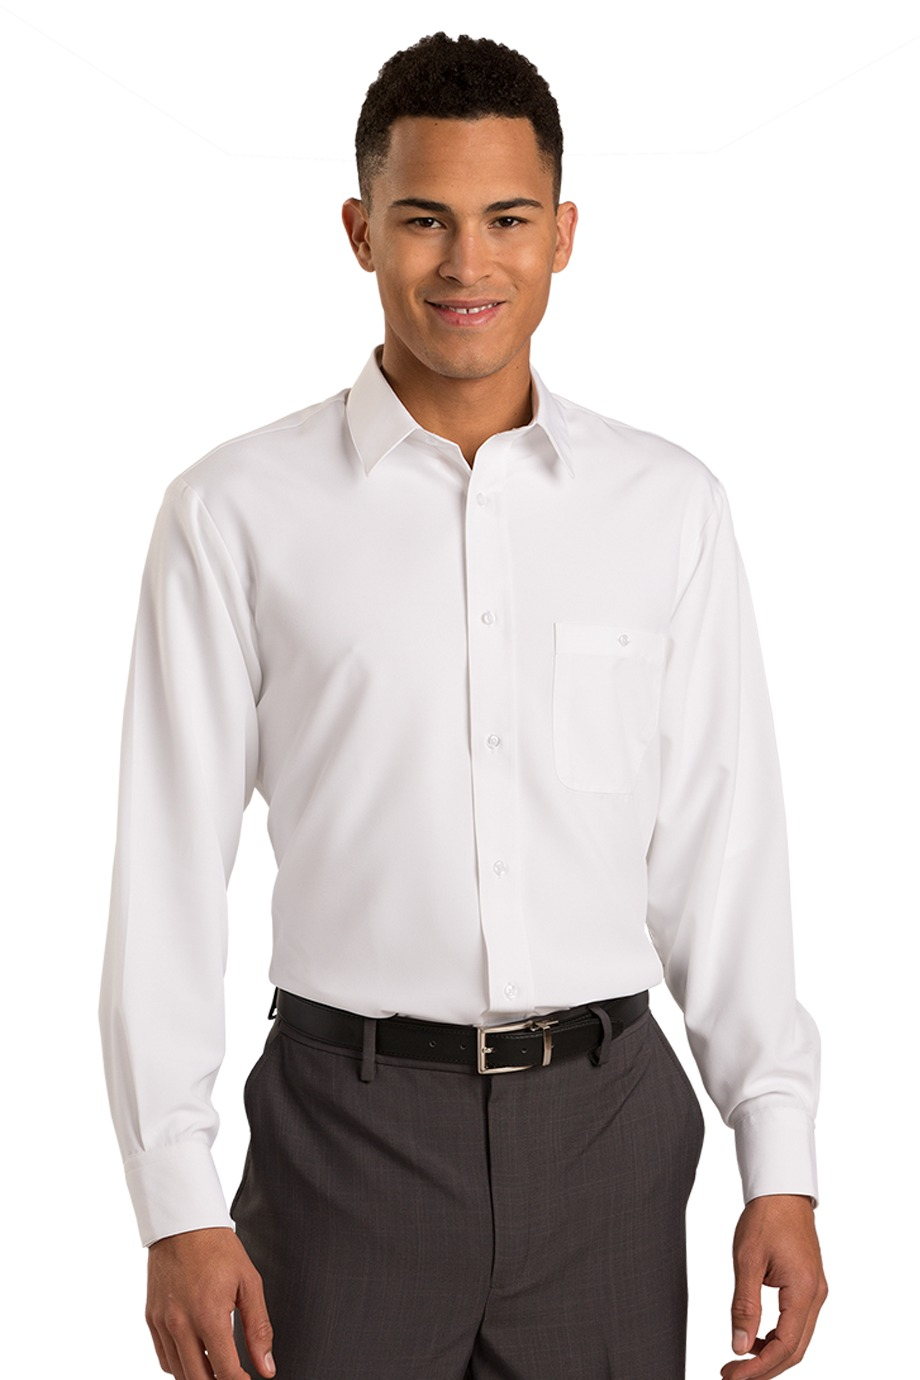 Edwards Garment 1292 - Batiste Shirt